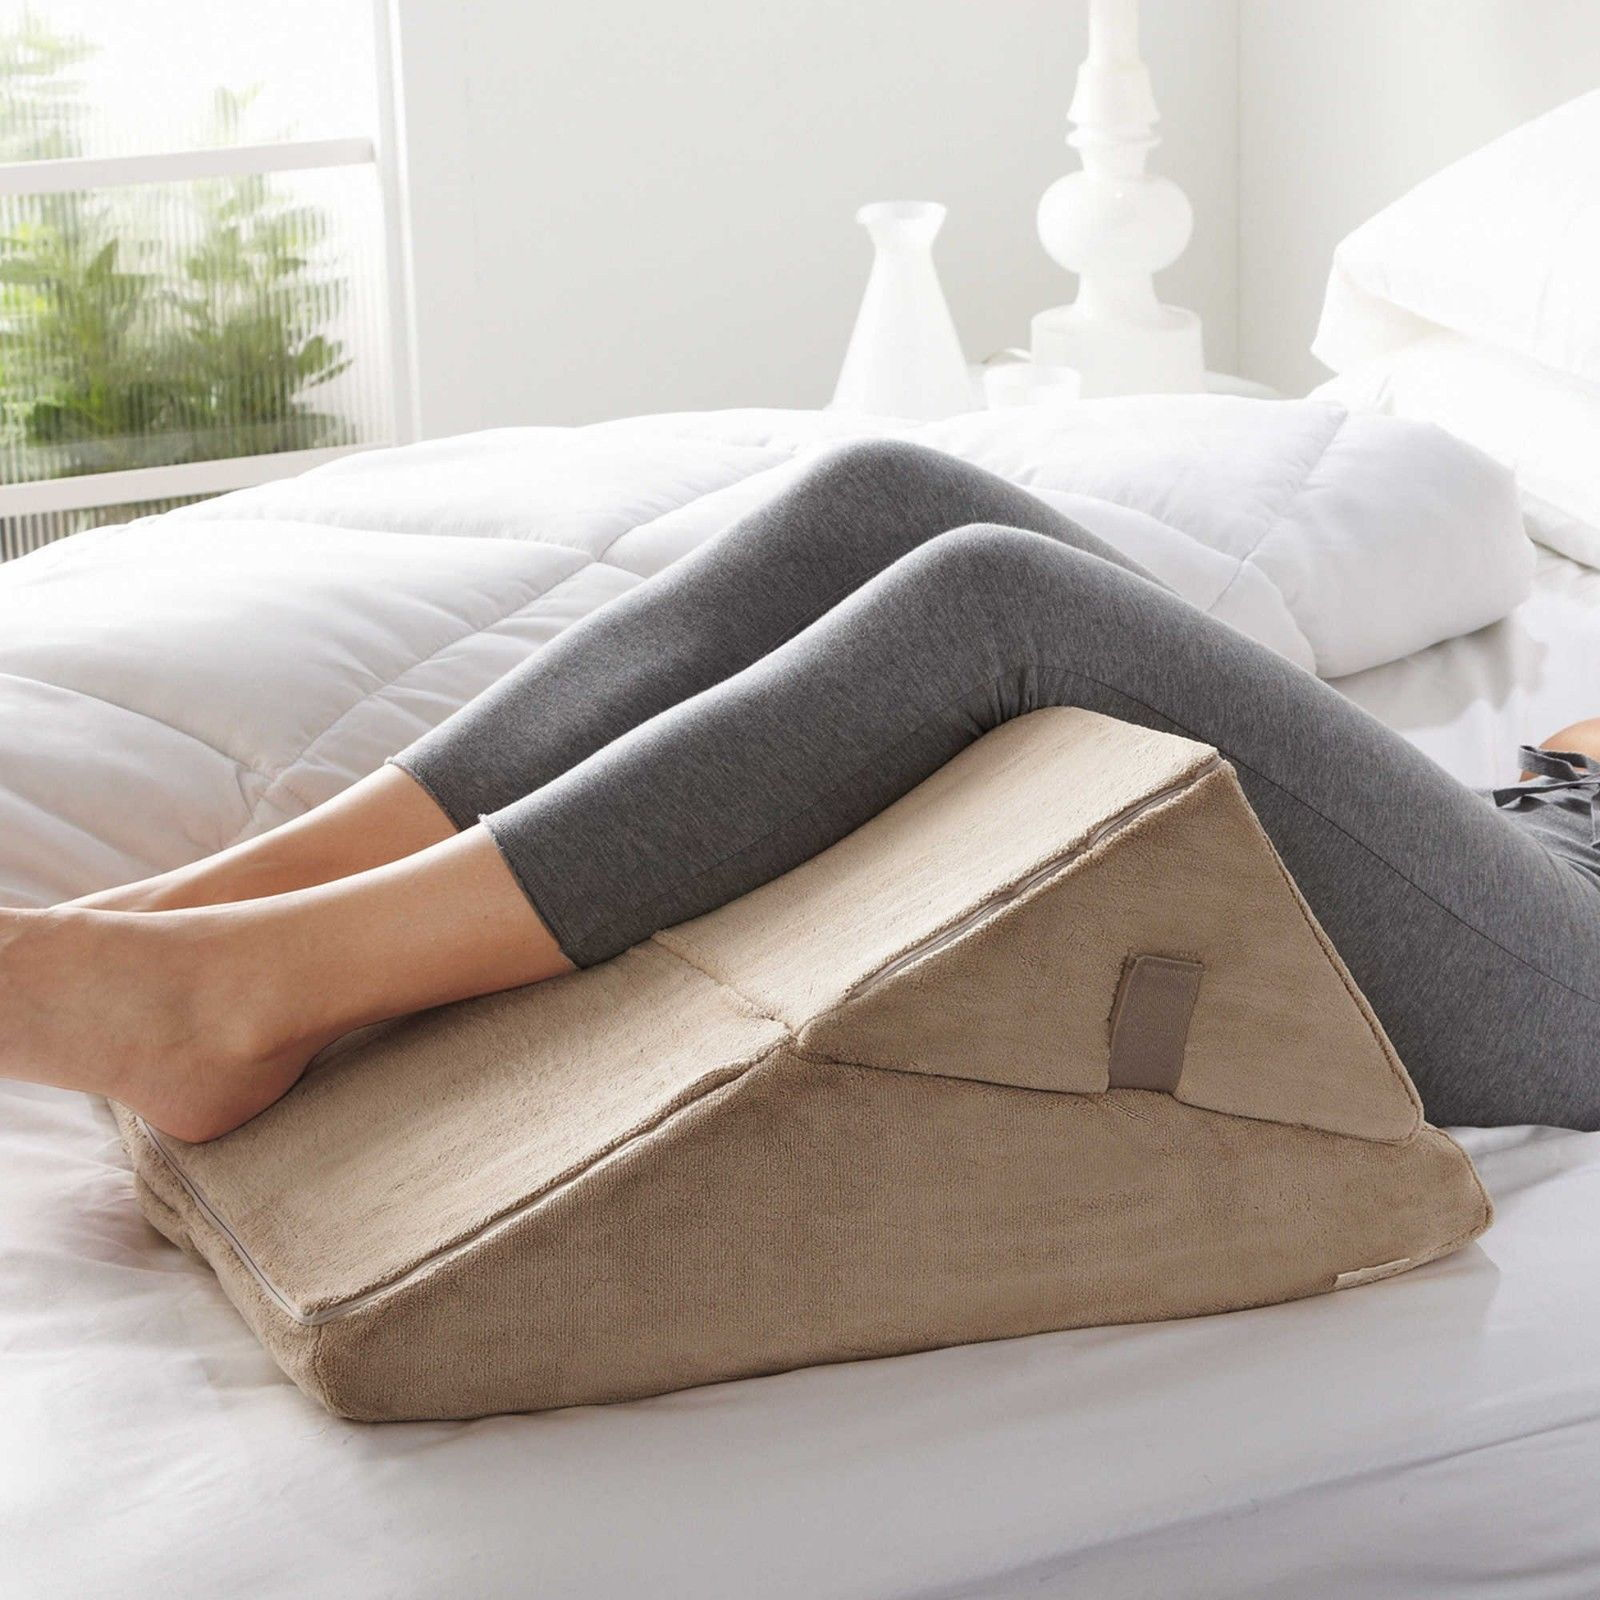 leg support pillow